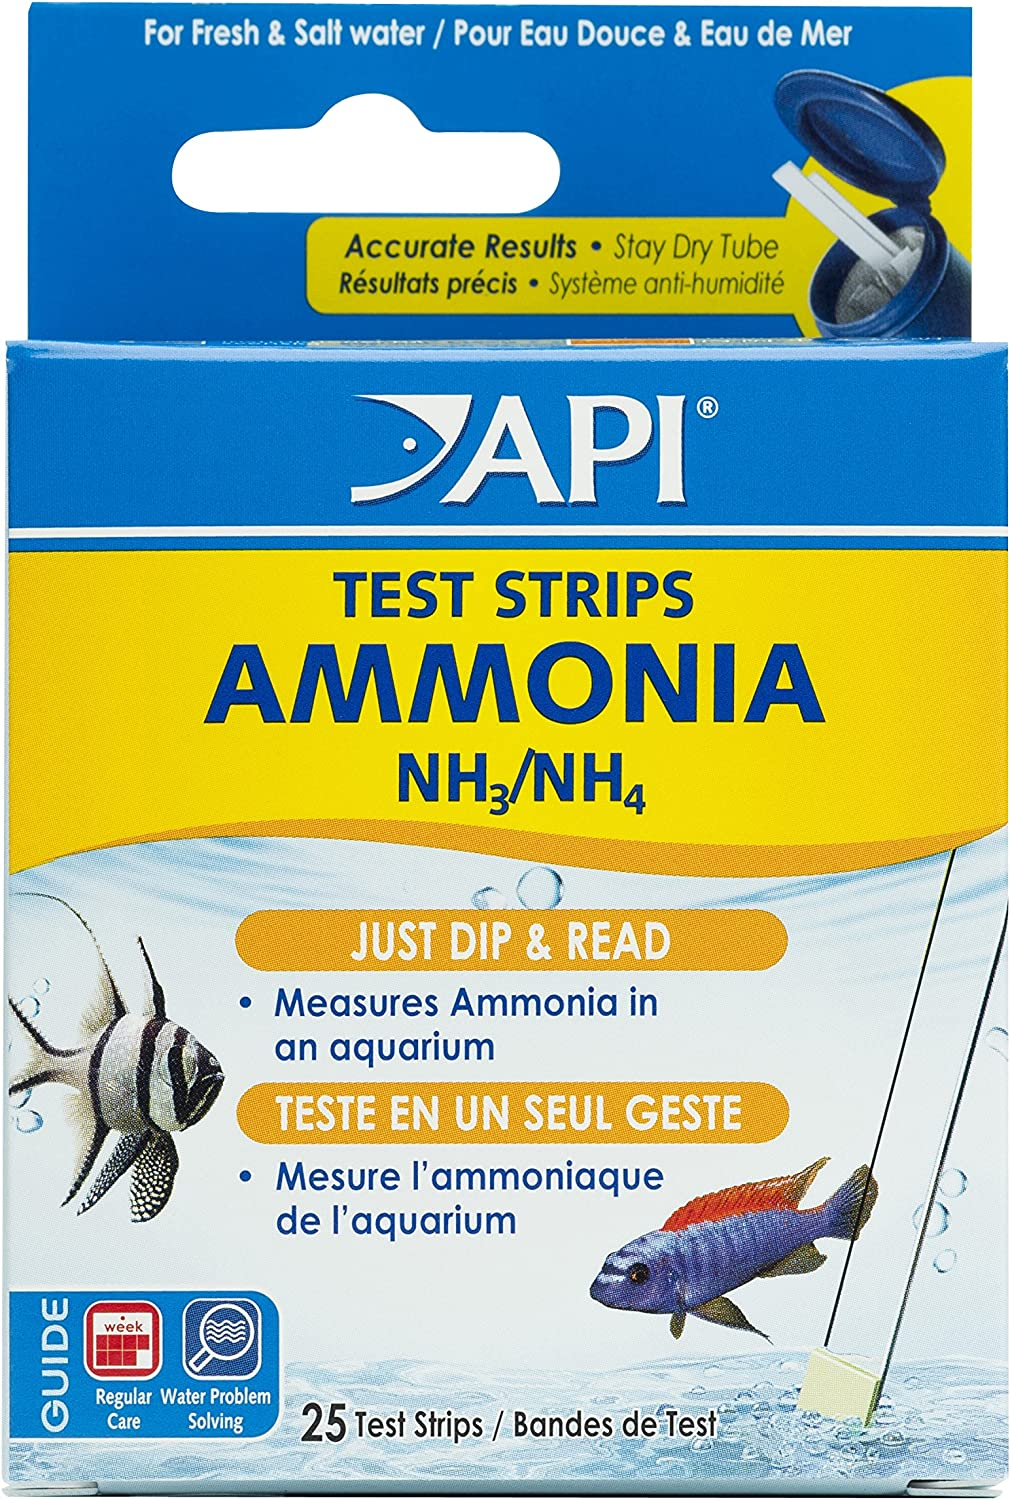 API Test Strips, for Variety of Water Parameters, Monitor Aquarium Water Quality and Help Prevent Invisible Water Problems That can be Harmful to Fish, Use Weekly and When Problems Appear